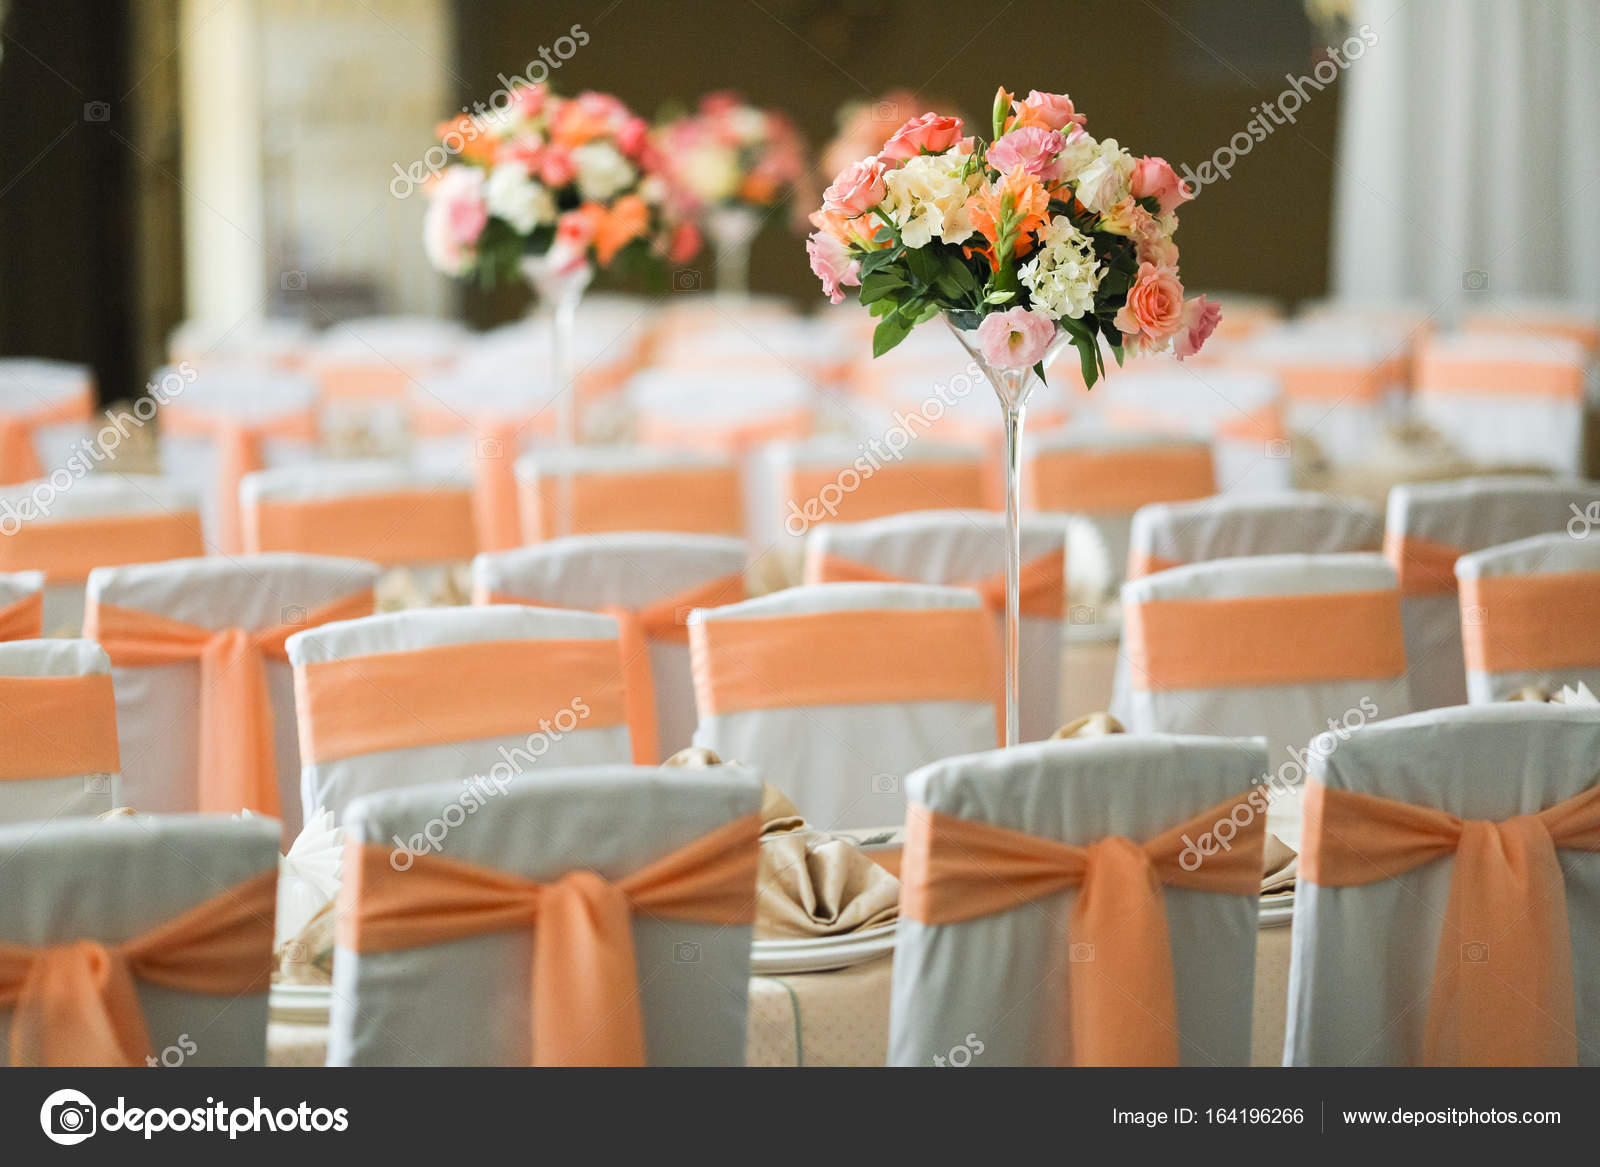 Wedding decoration in peach color stock photo yrfyonova beautiful wedding decorations in peach color with fresh flowers photo by yrfyonovayandex junglespirit Gallery